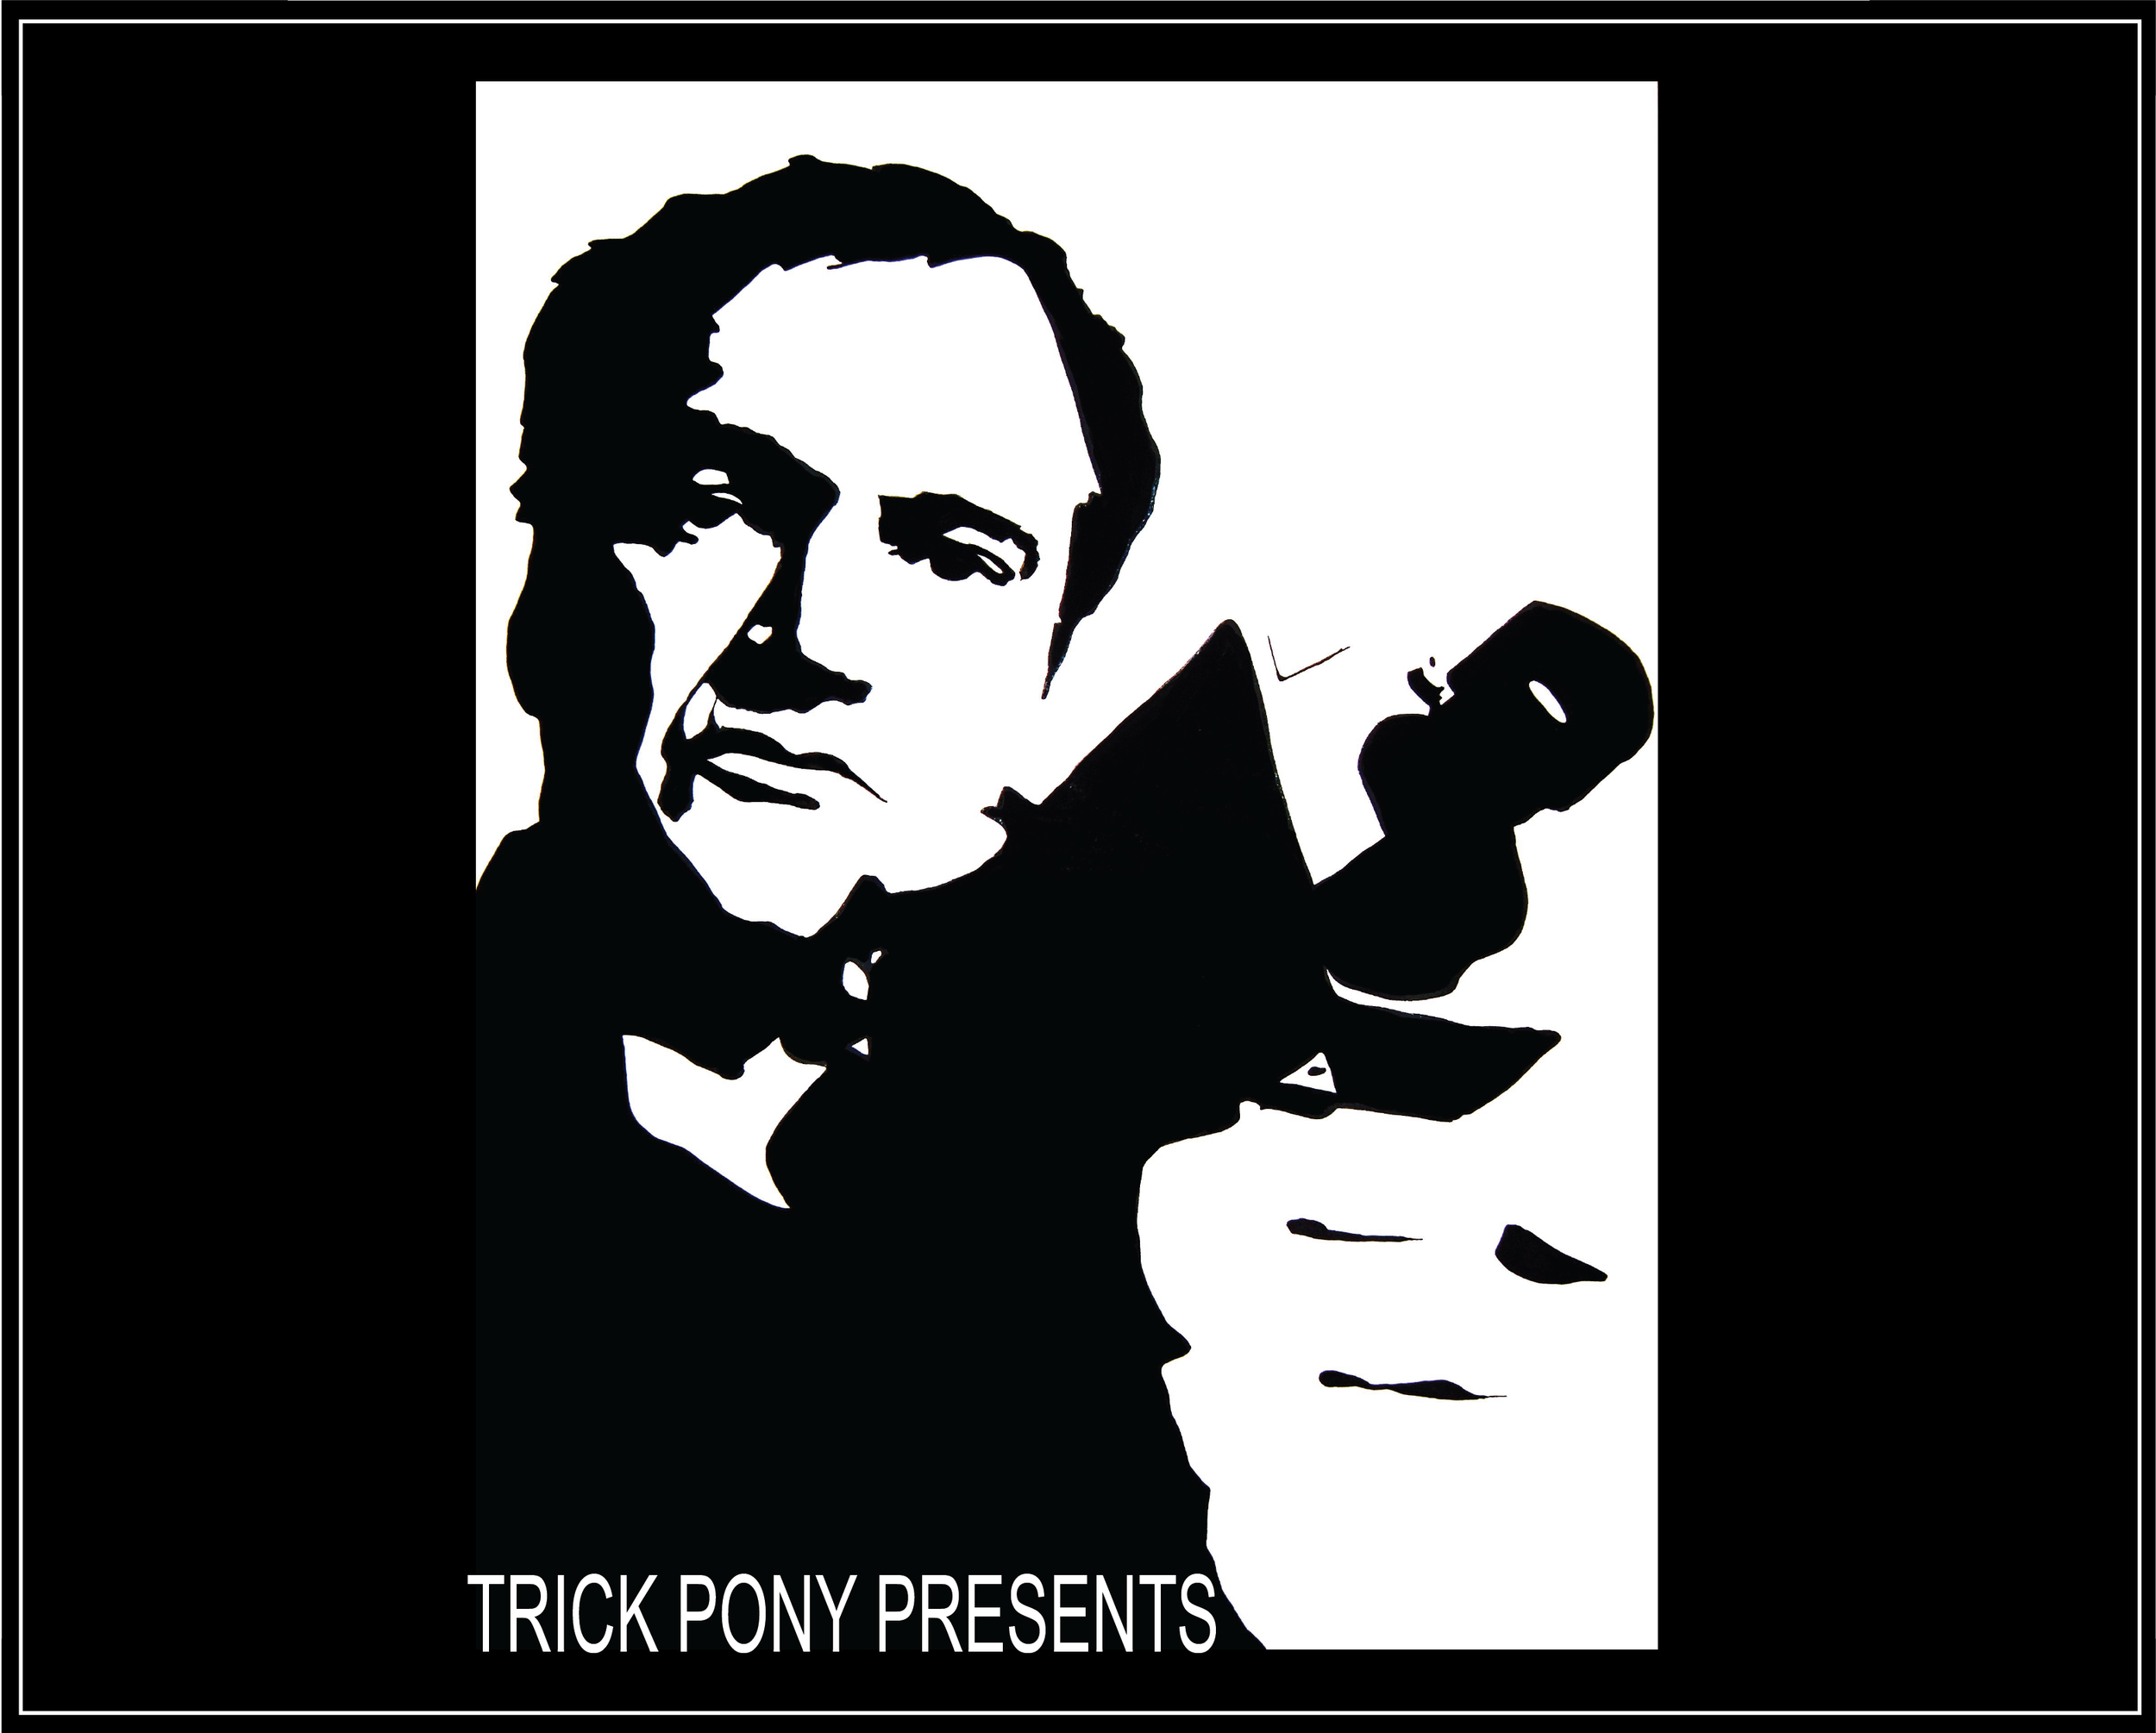 ALL TRICK PONY LOGOS-15.png